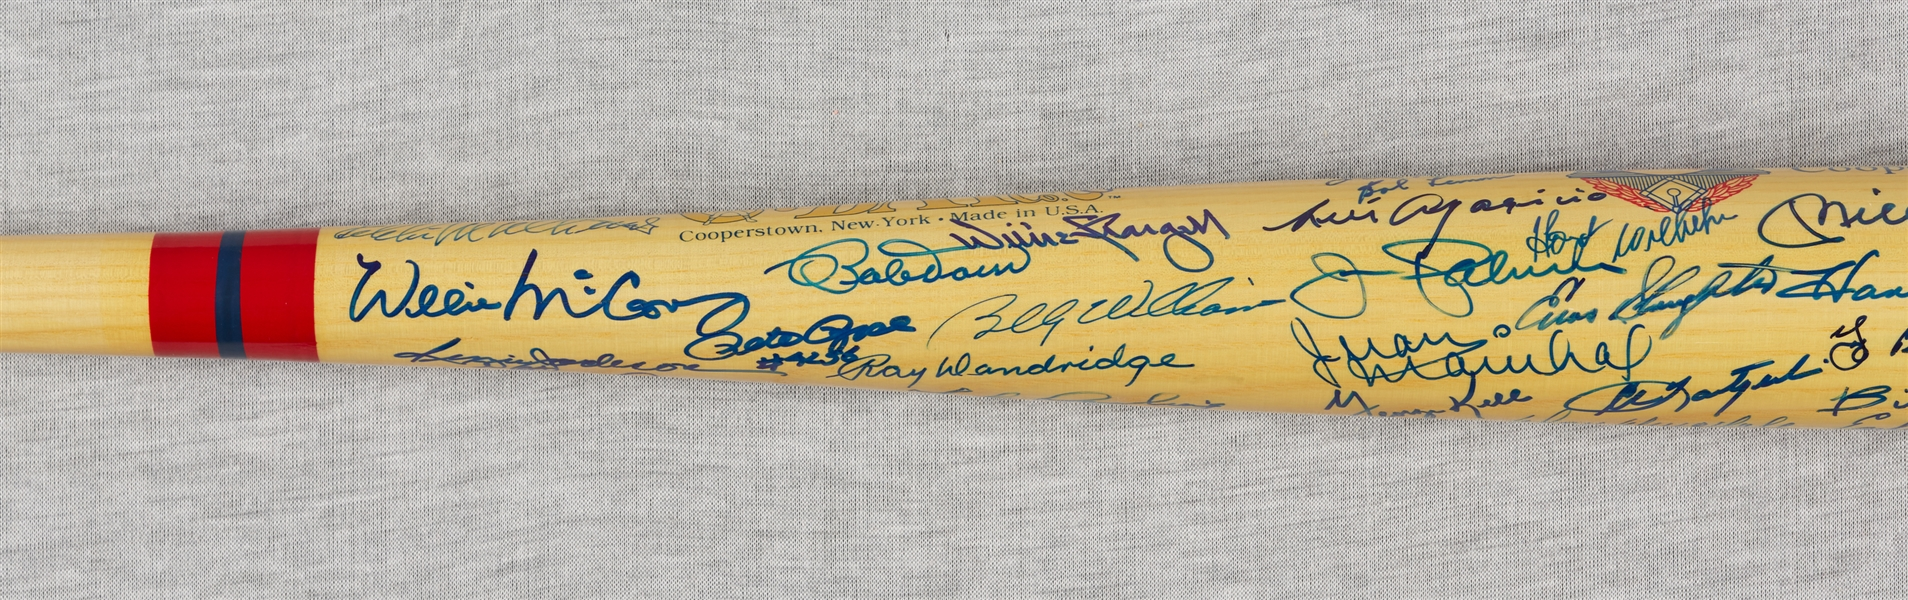 HOFer Multi-Signed Cooperstown Bat with Mantle, DiMaggio, Koufax, Aaron, Mays (50+) (JSA)